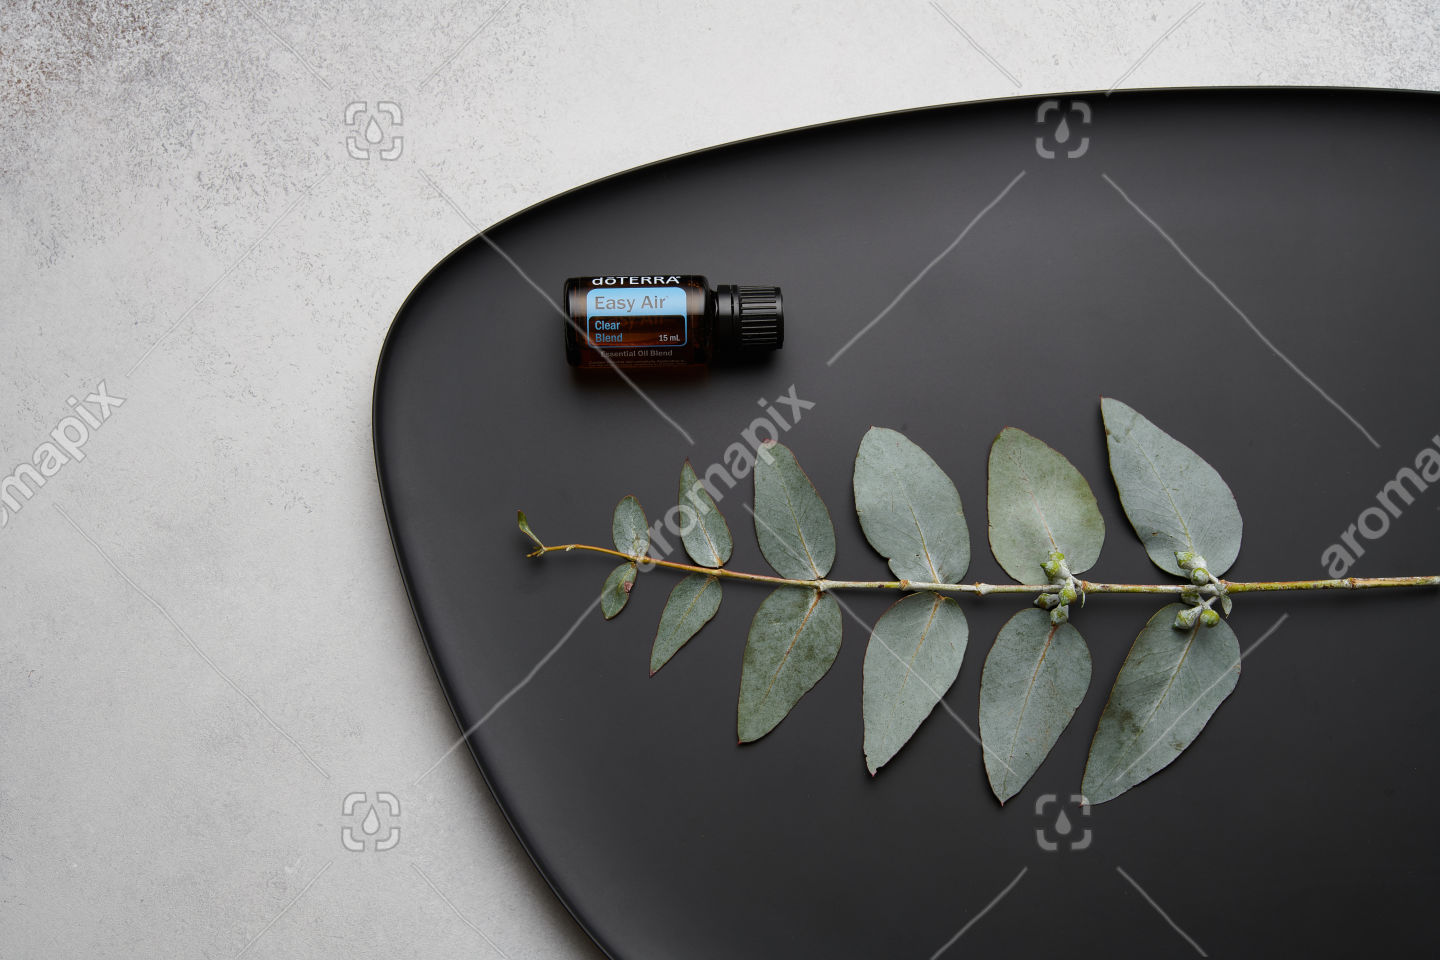 doTERRA Easy Air and eucalyptus leaves on black plate